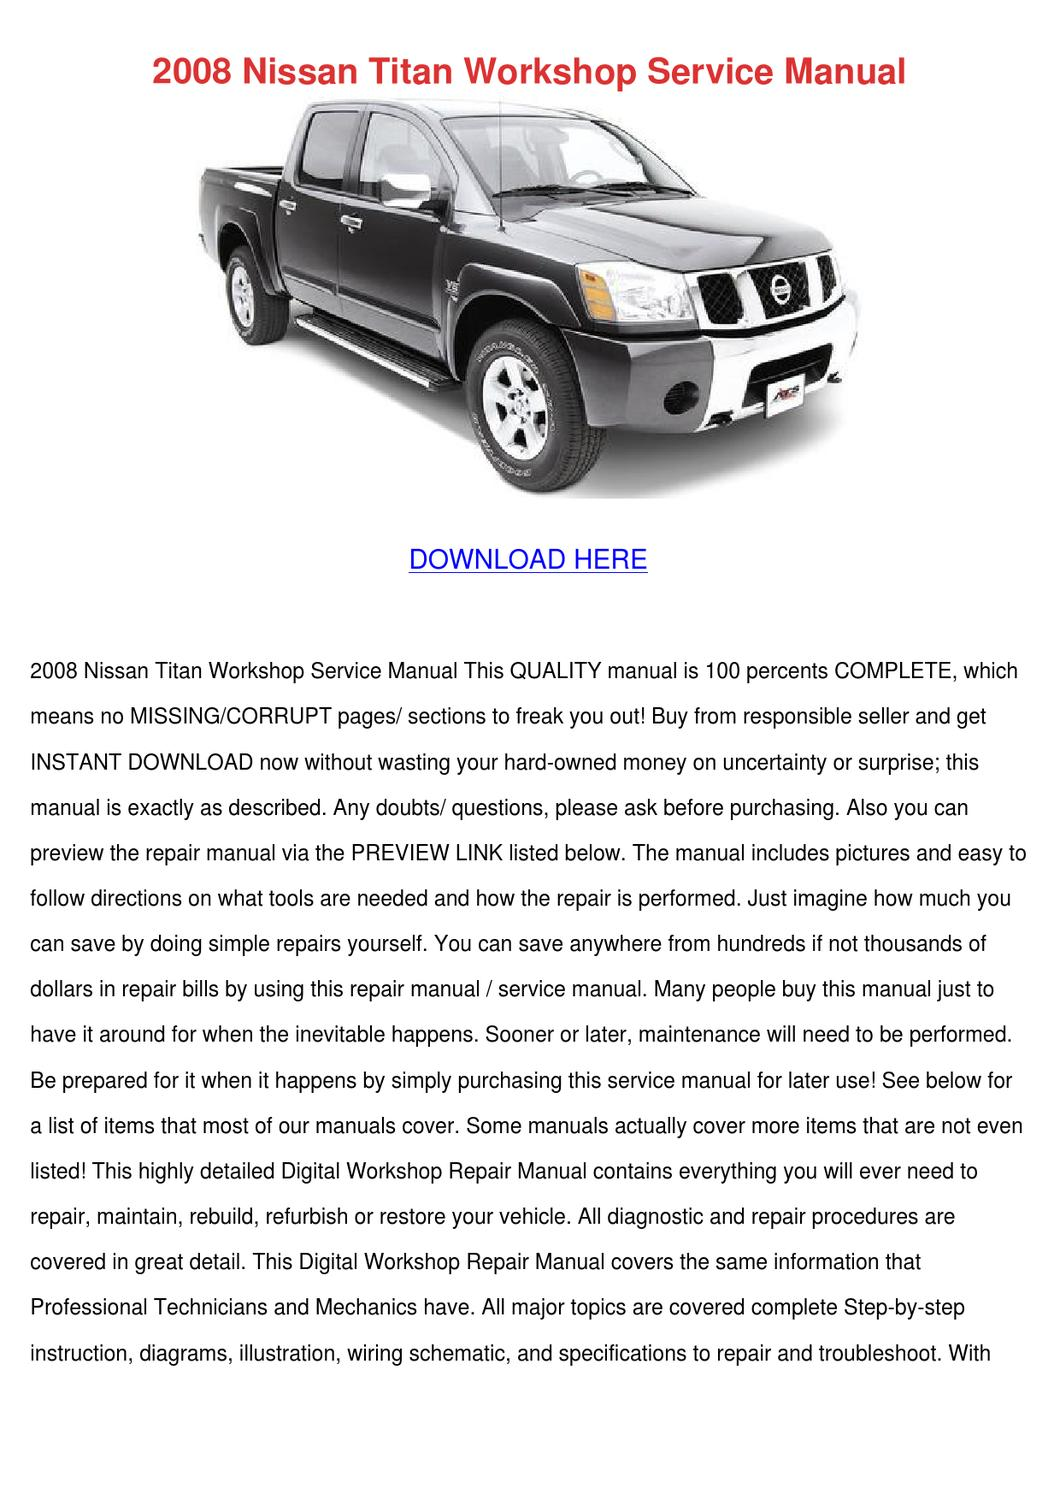 2008 Nissan Titan Workshop Service Manual By Kimheim Issuu 1996 Altima Wiring Diagram Related Keywords Suggestions